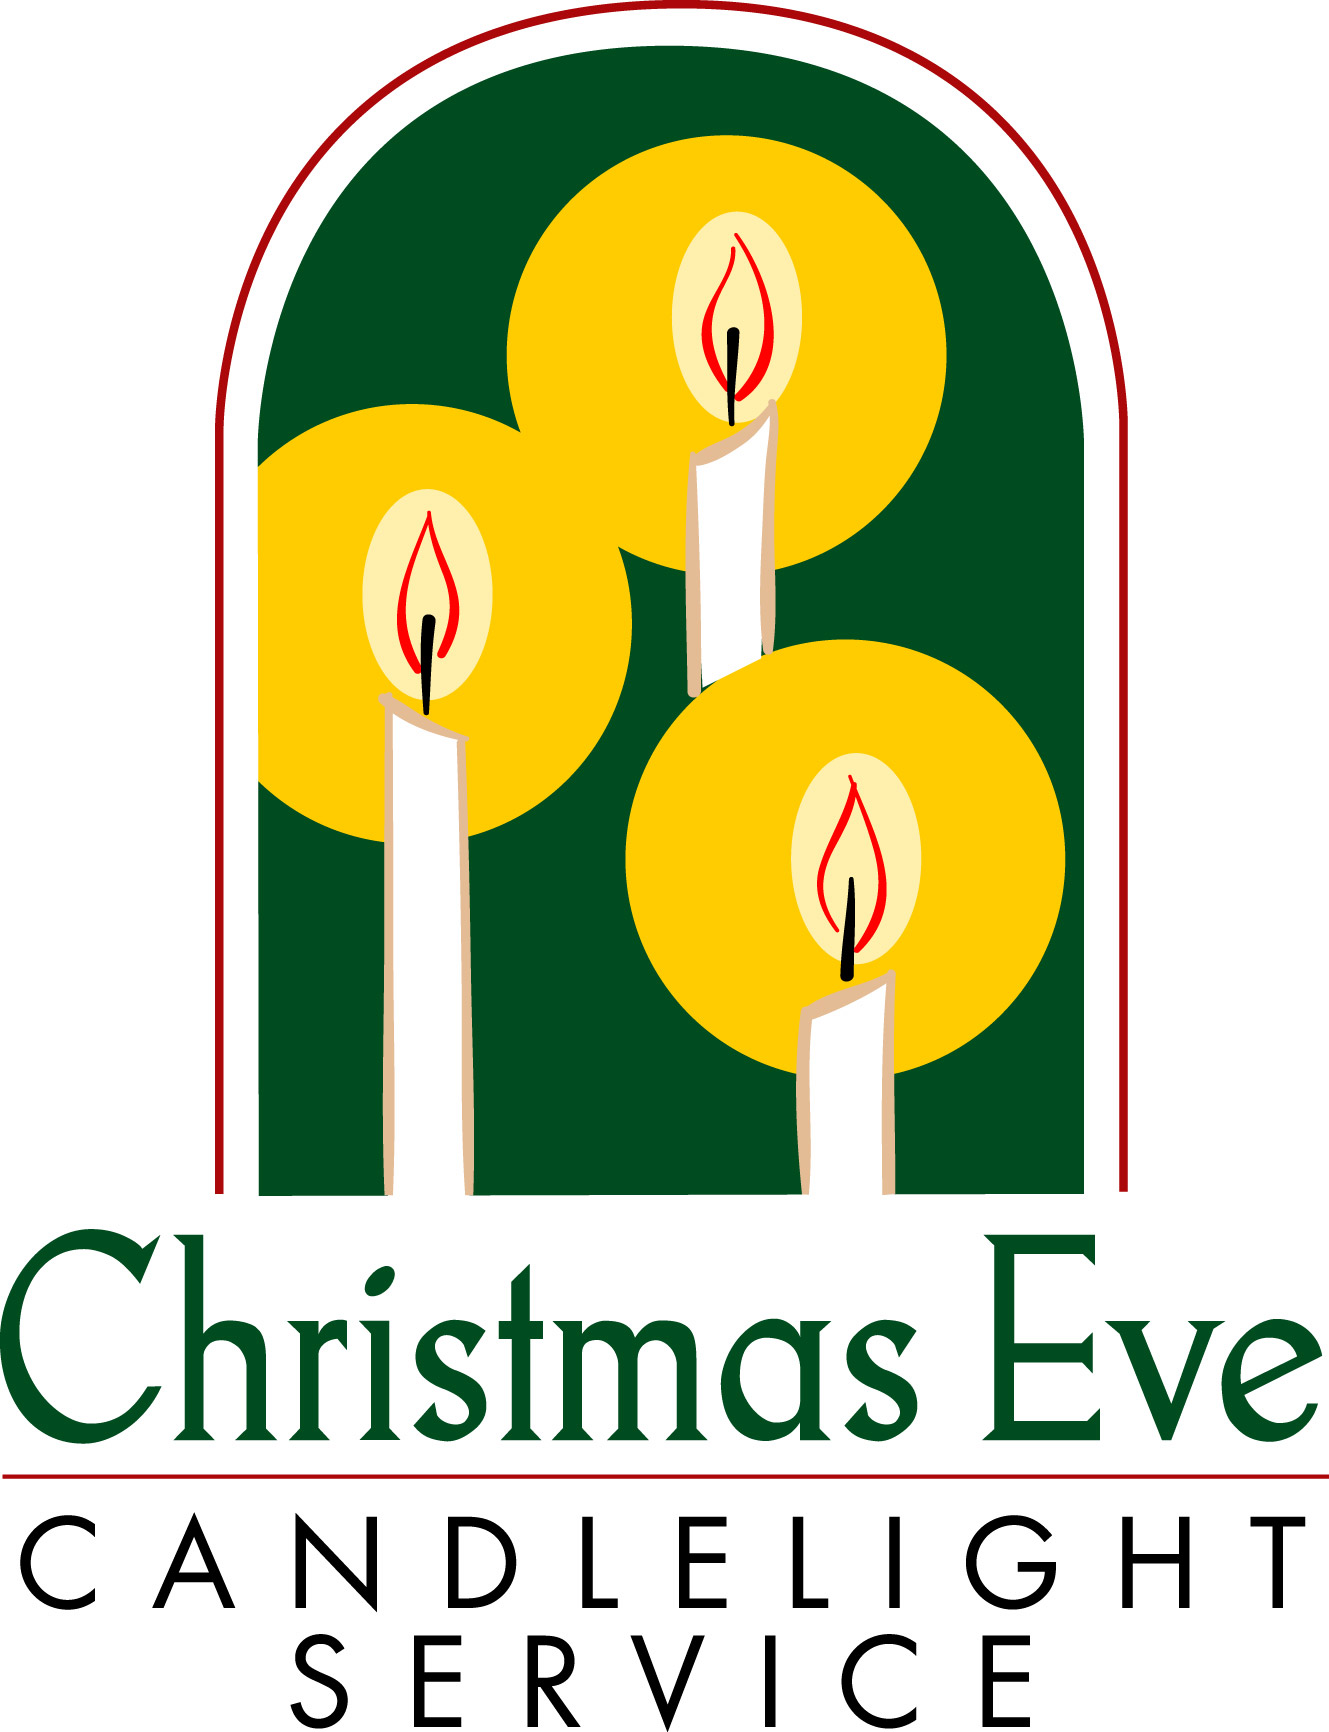 Christmas eve clipart christian.